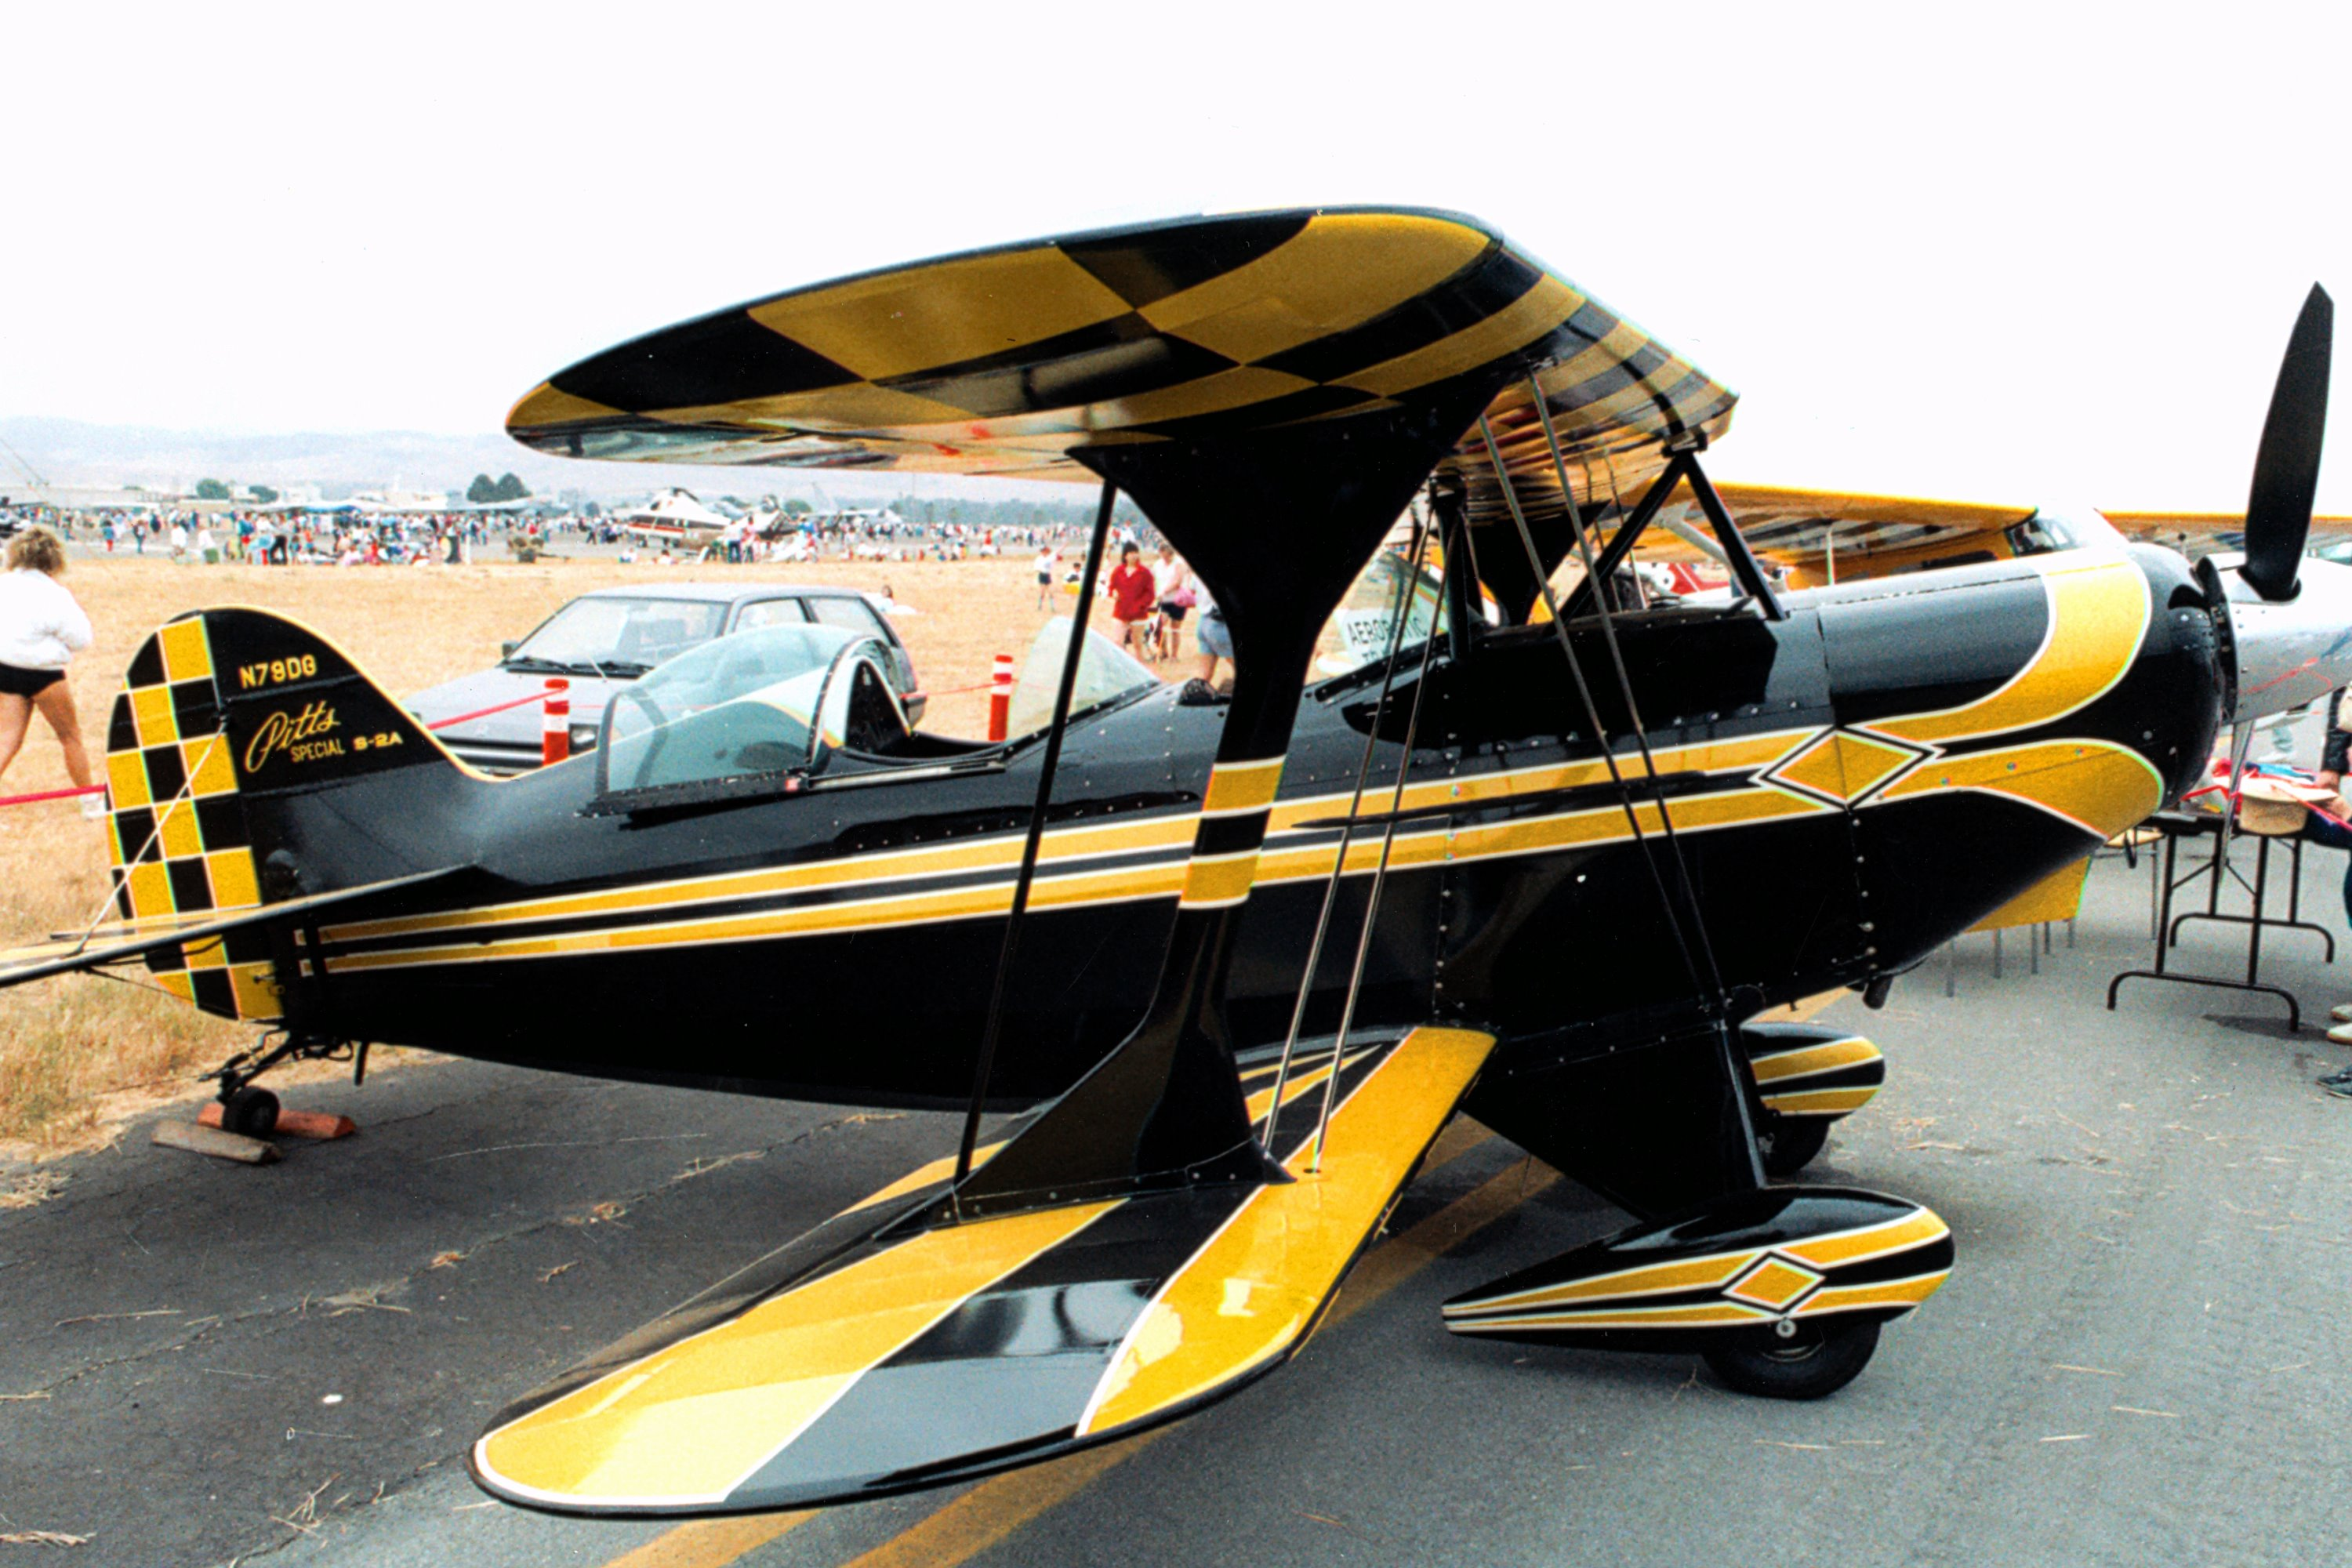 Aerotek Pitts S-2A Special, two-seat aerobatic biplane